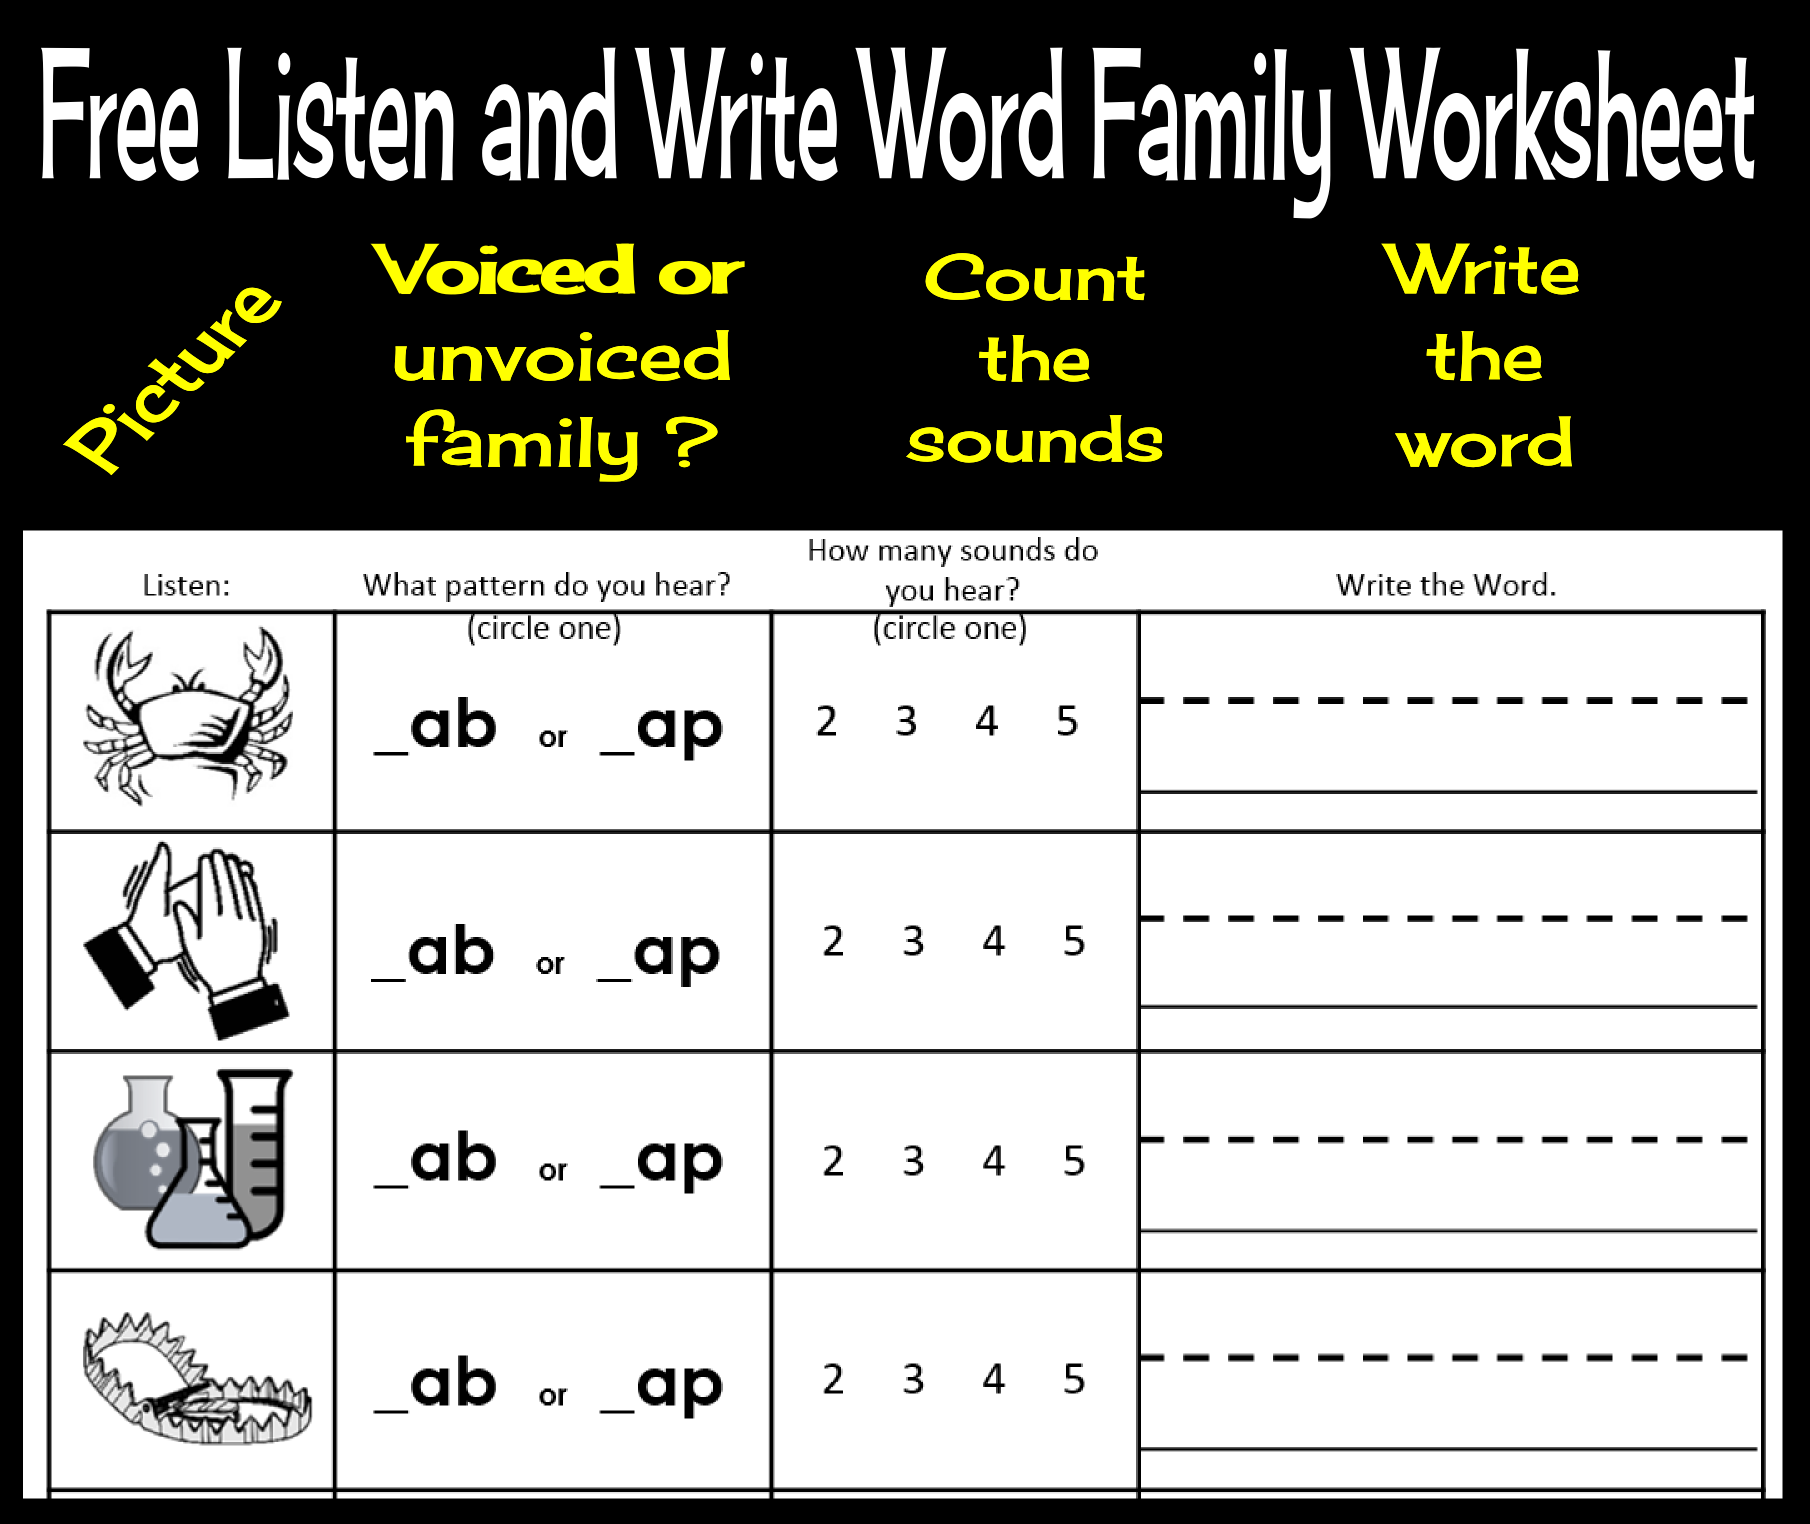 Free Listen And Write Word Families Book 1 Sample Page Word Families Word Family Books Word Family Worksheets [ 1524 x 1810 Pixel ]